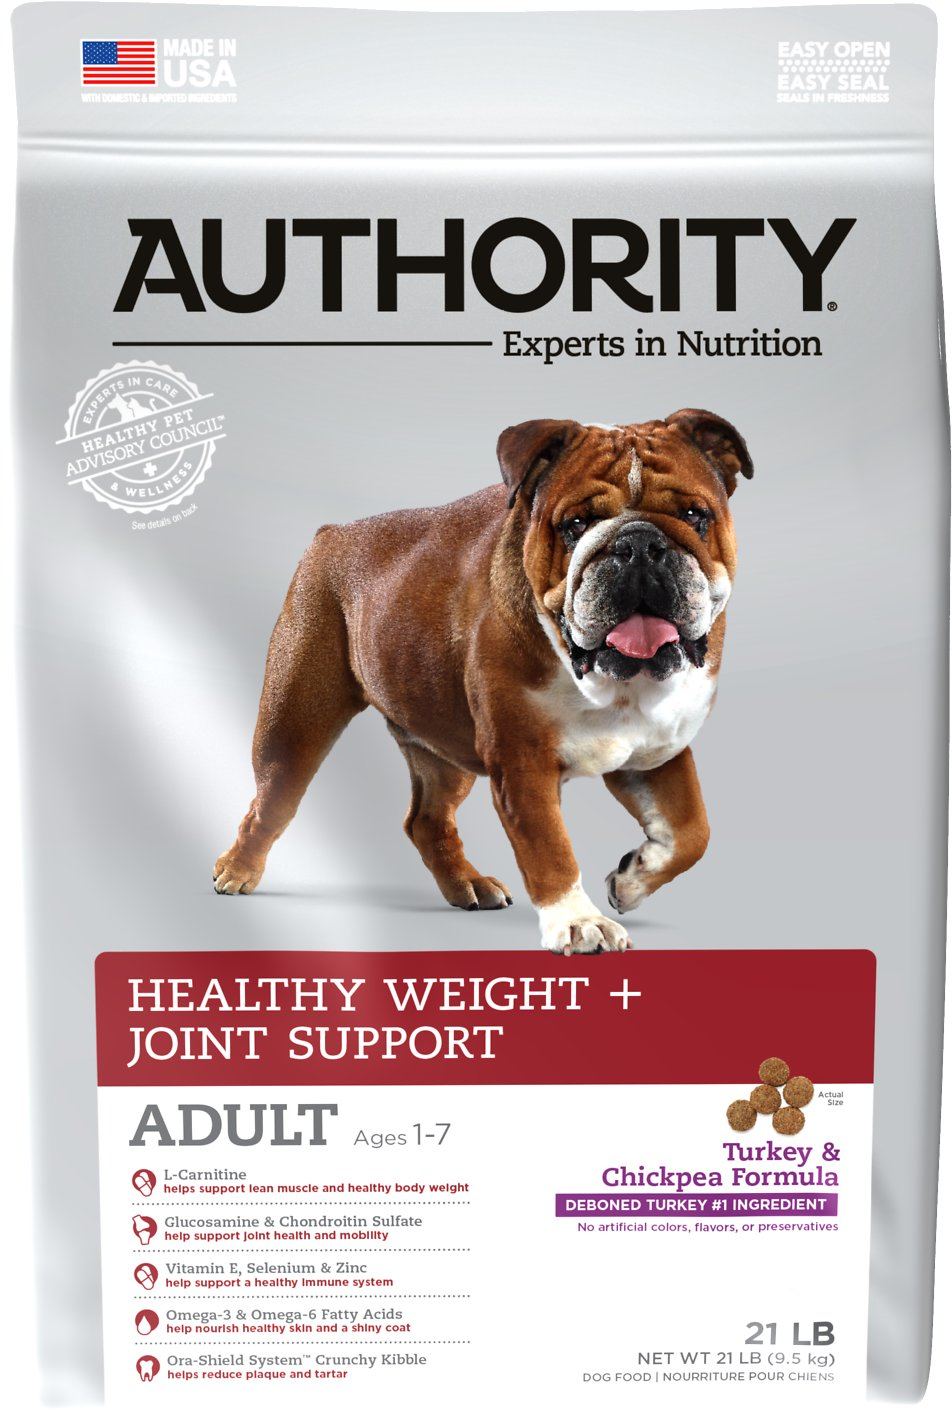 Authority Healthy Weight & Joint Support Turkey & Chickpea Formula Adult  Dry Dog Food, 21-lb bag